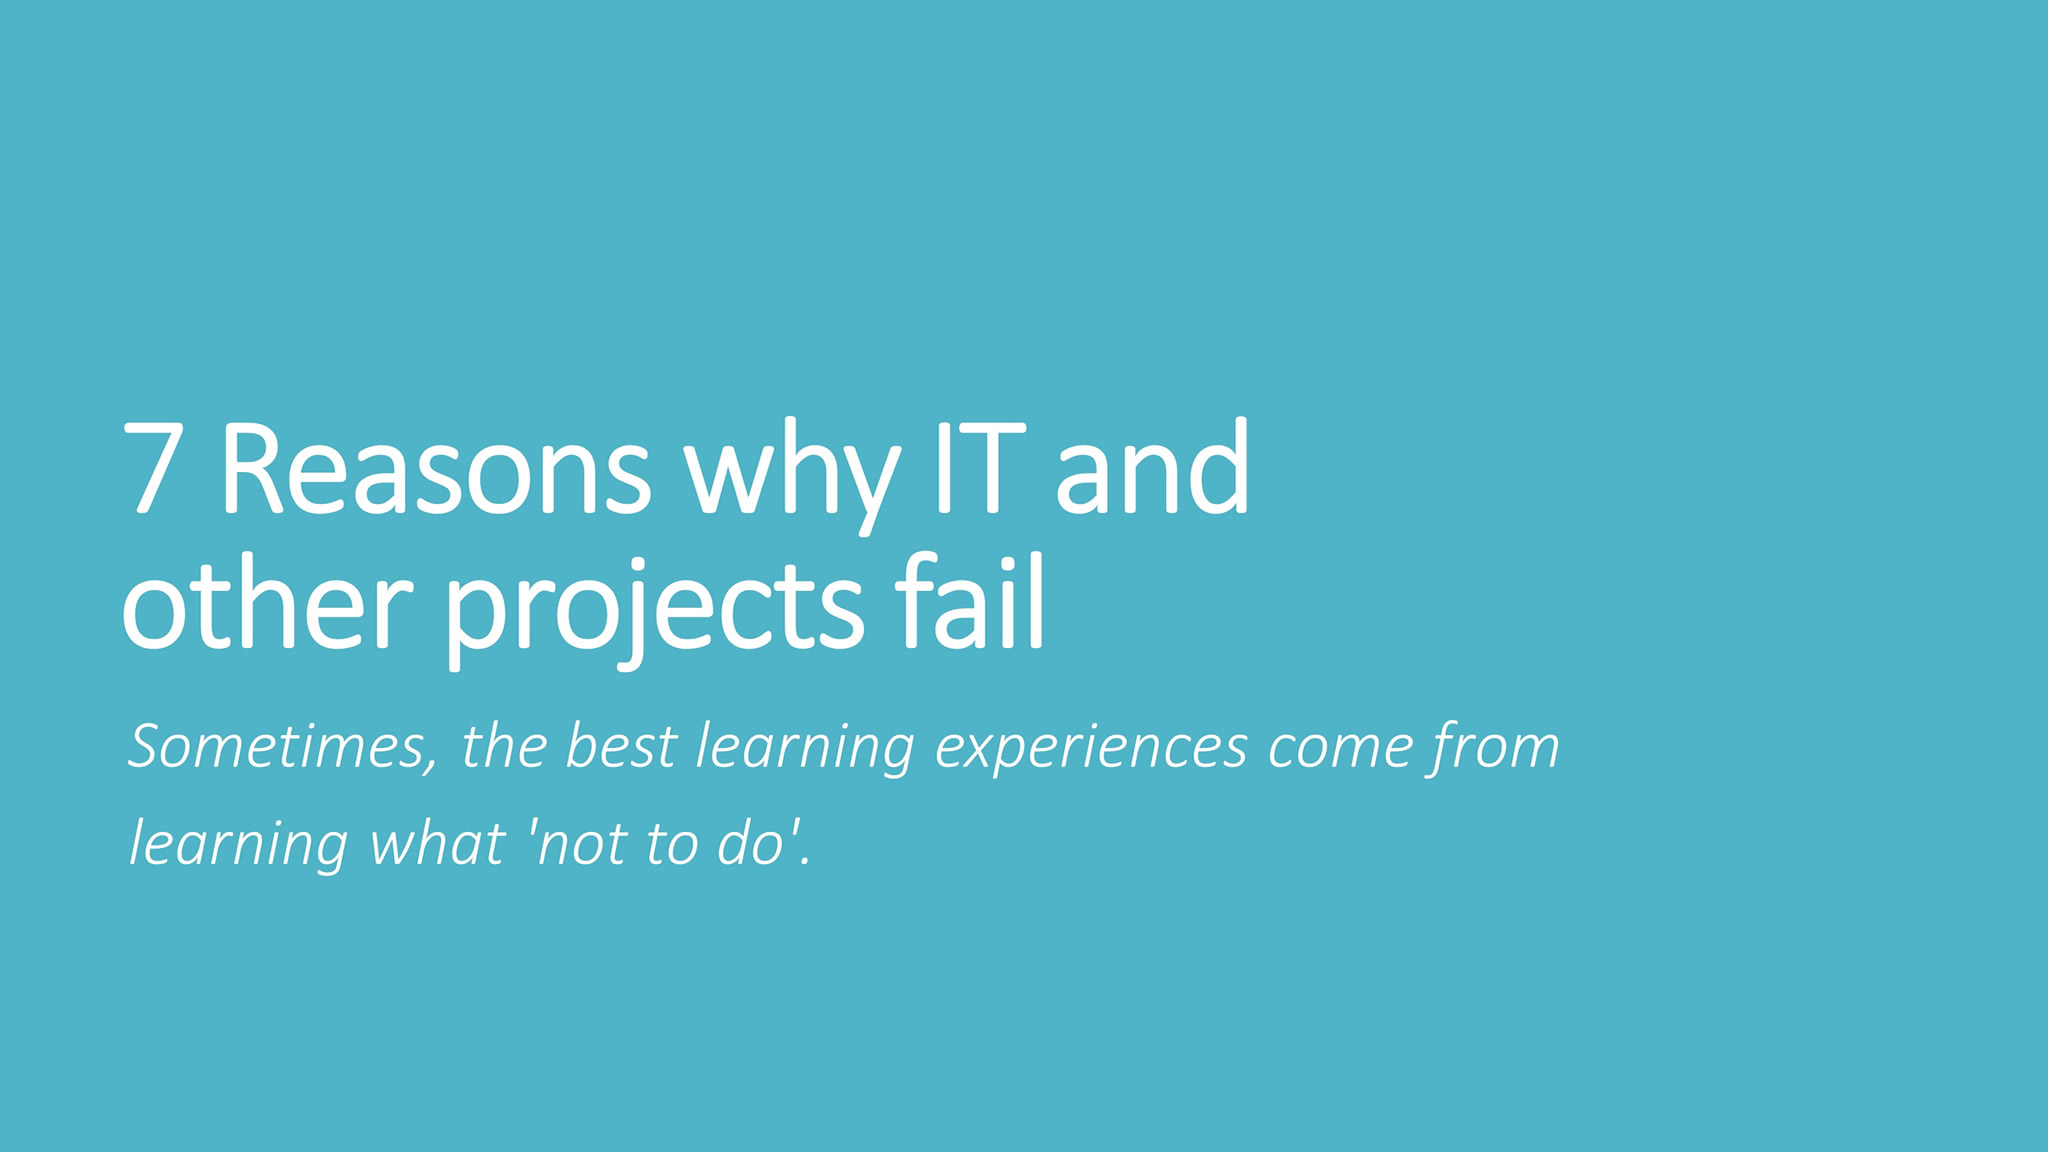 7 Reasons Your IT or Other Projects May Fail (Project Management)